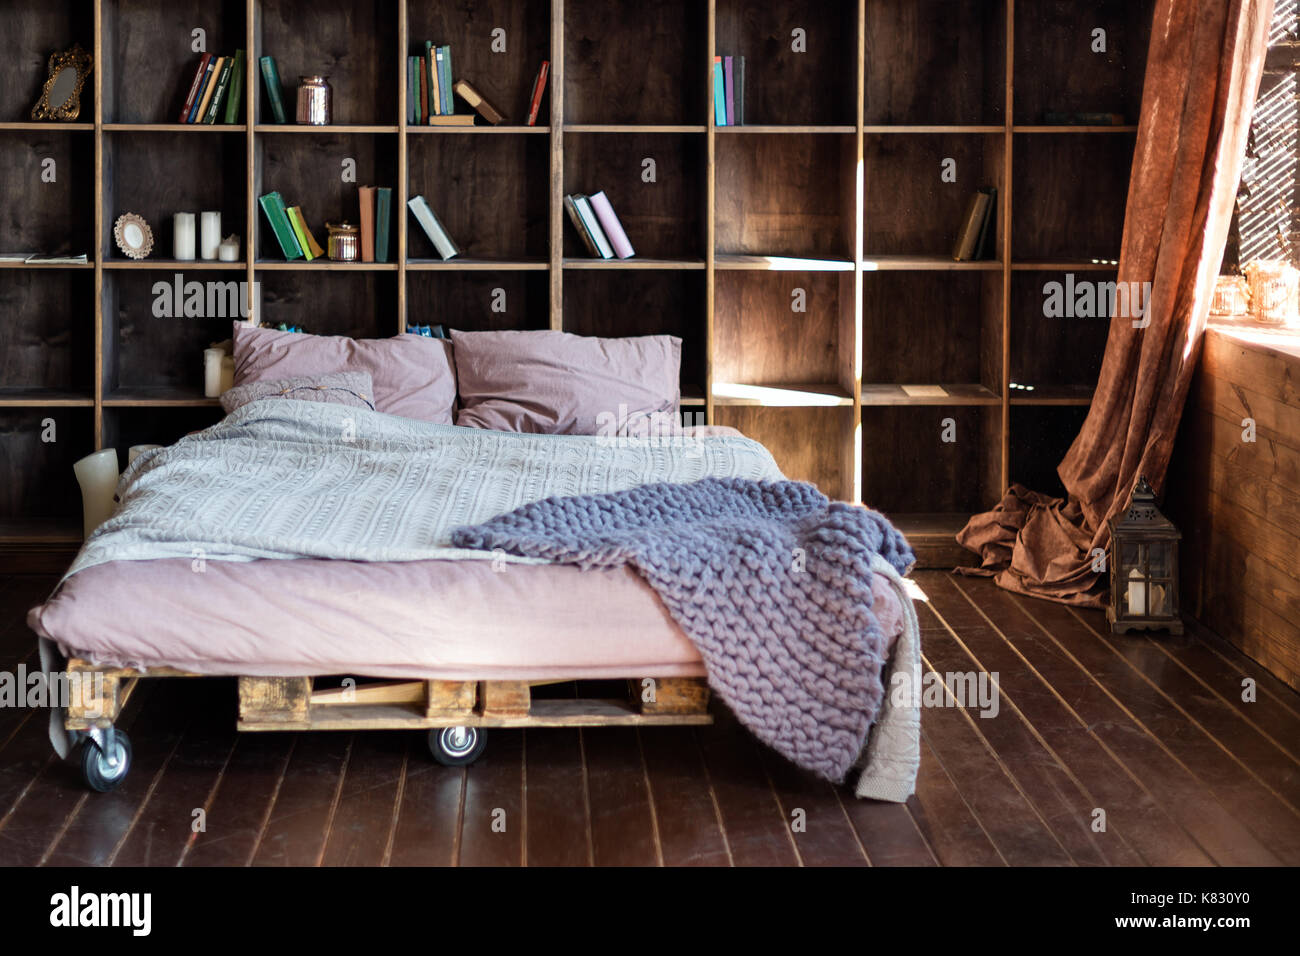 Modern Bedroom In A Loft Urban Apartment With Pallet Bed